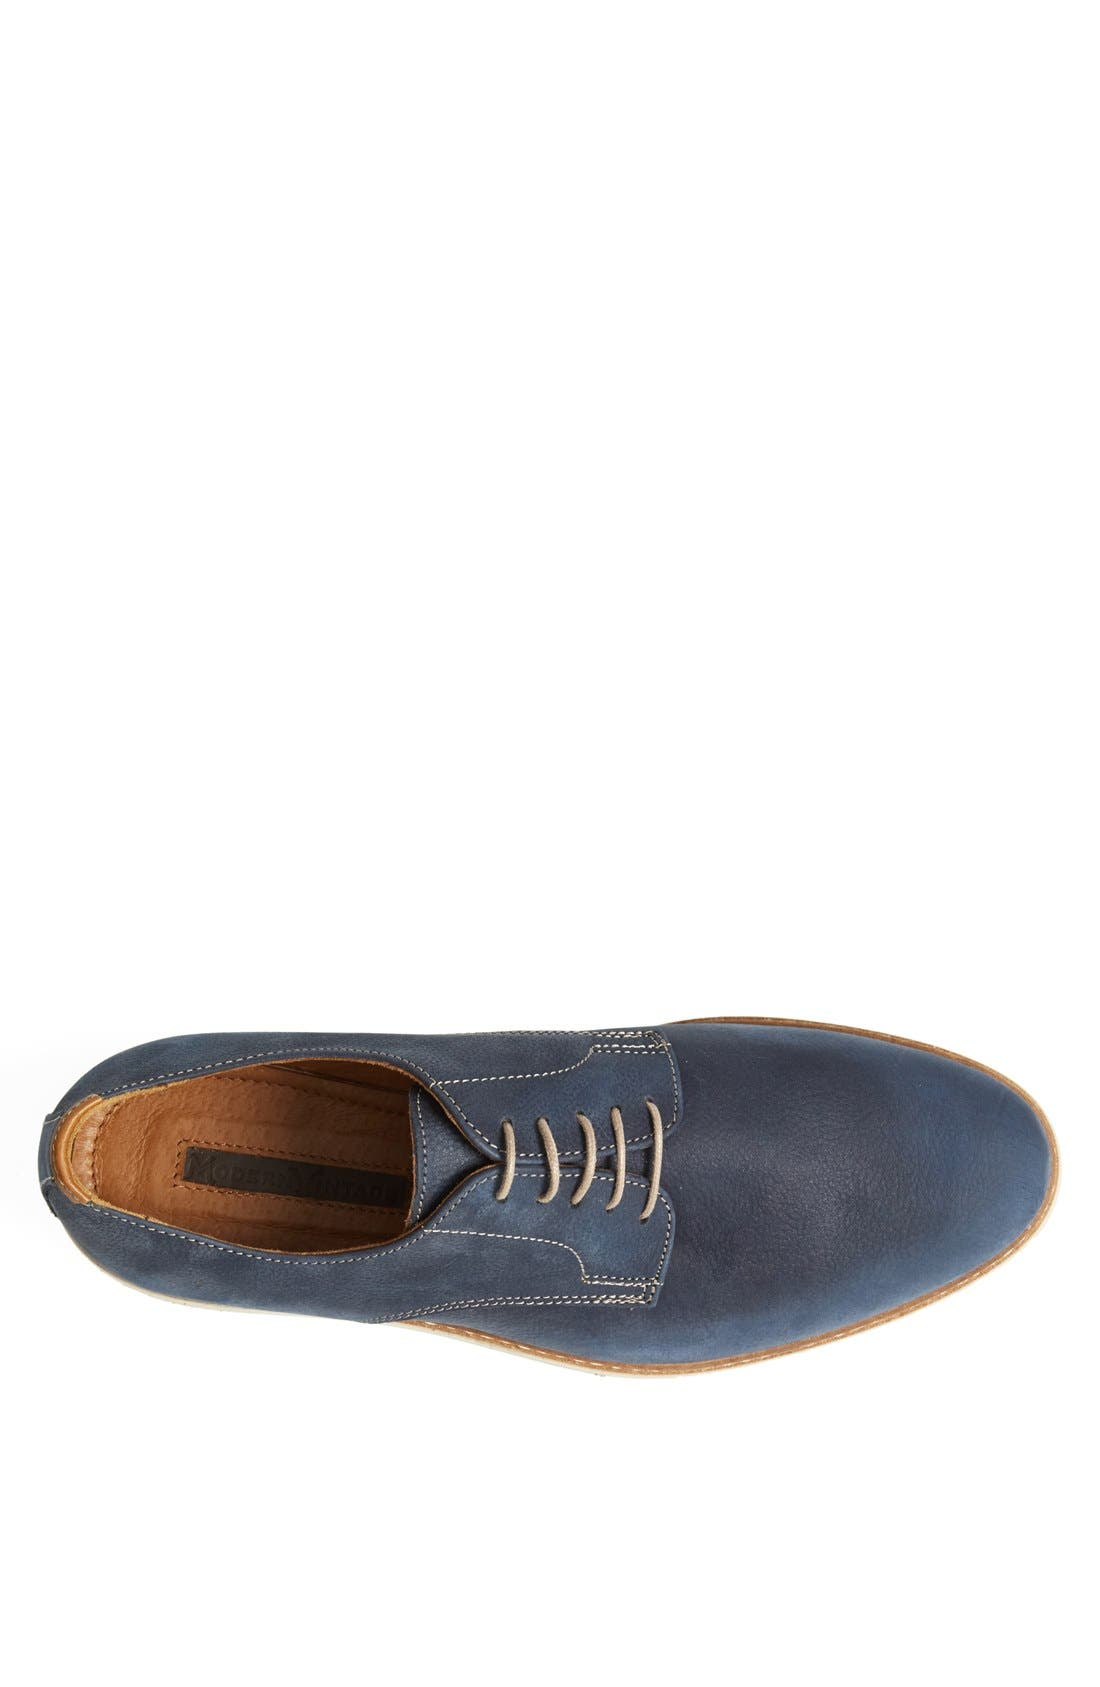 Alternate Image 3  - Modern Vintage 'Achilles' Plain Toe Derby